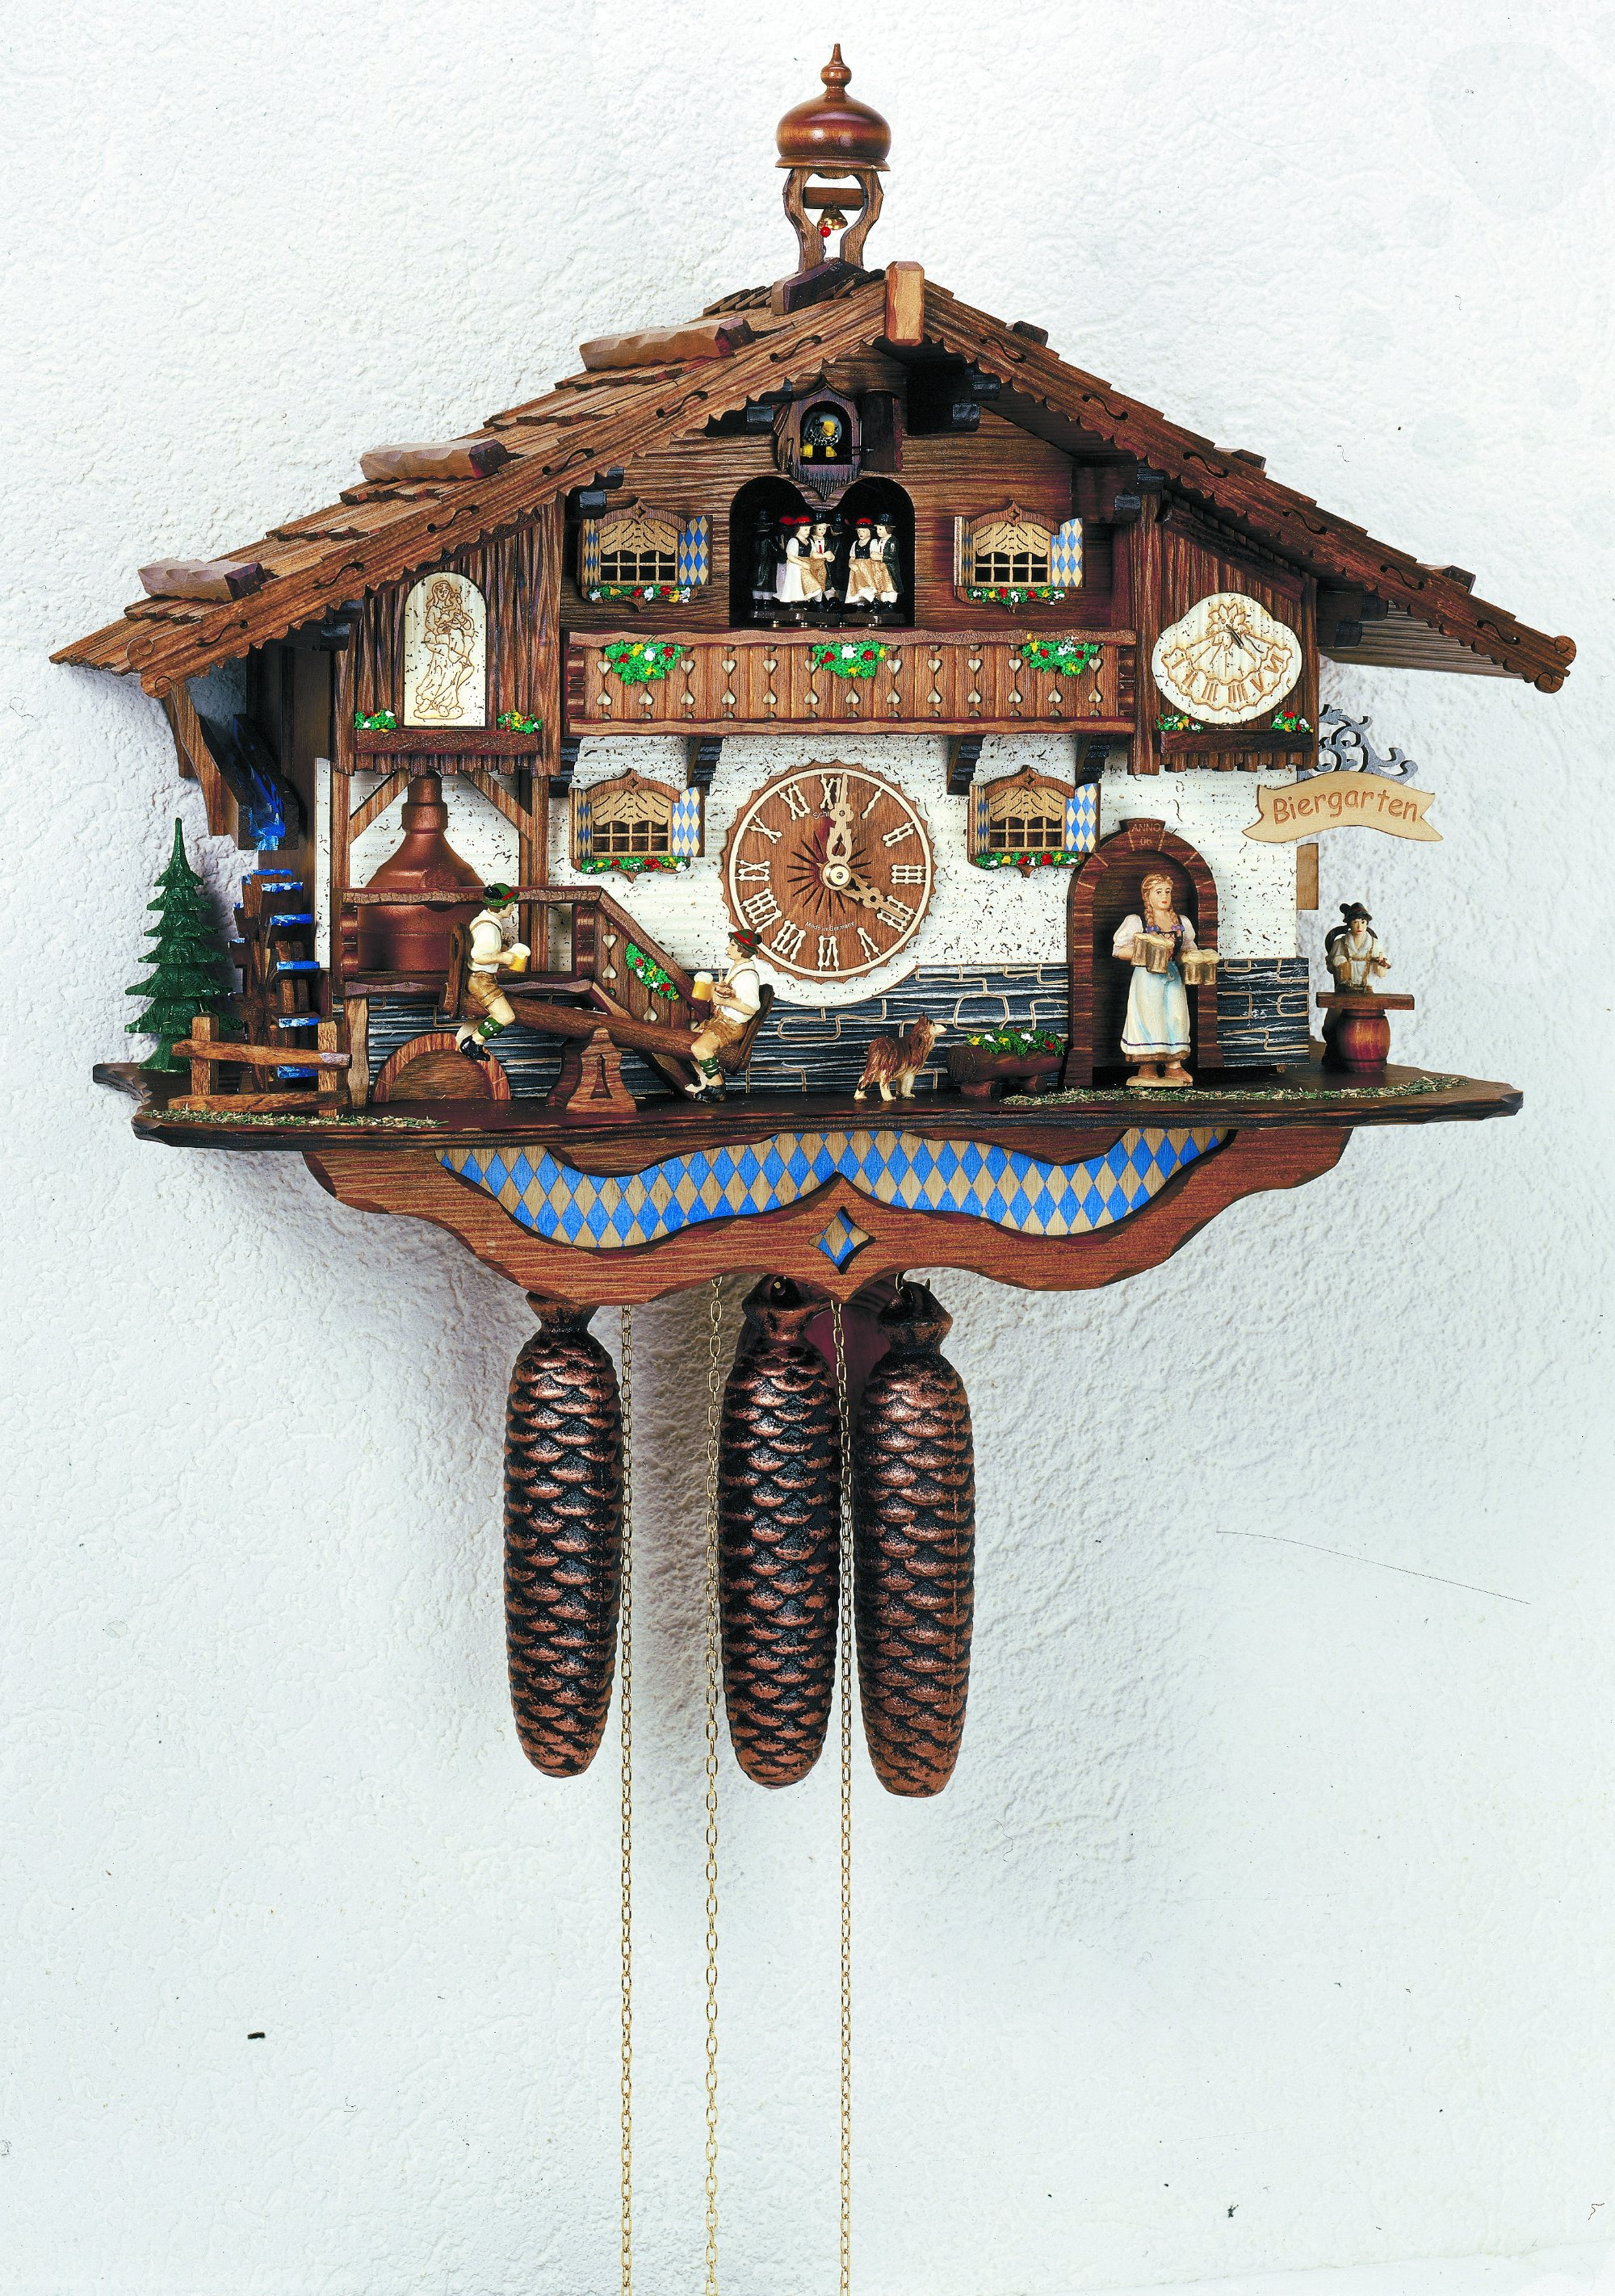 Affordable Cuckoo Clocks Placeofclocks 39s Weblog November 2008